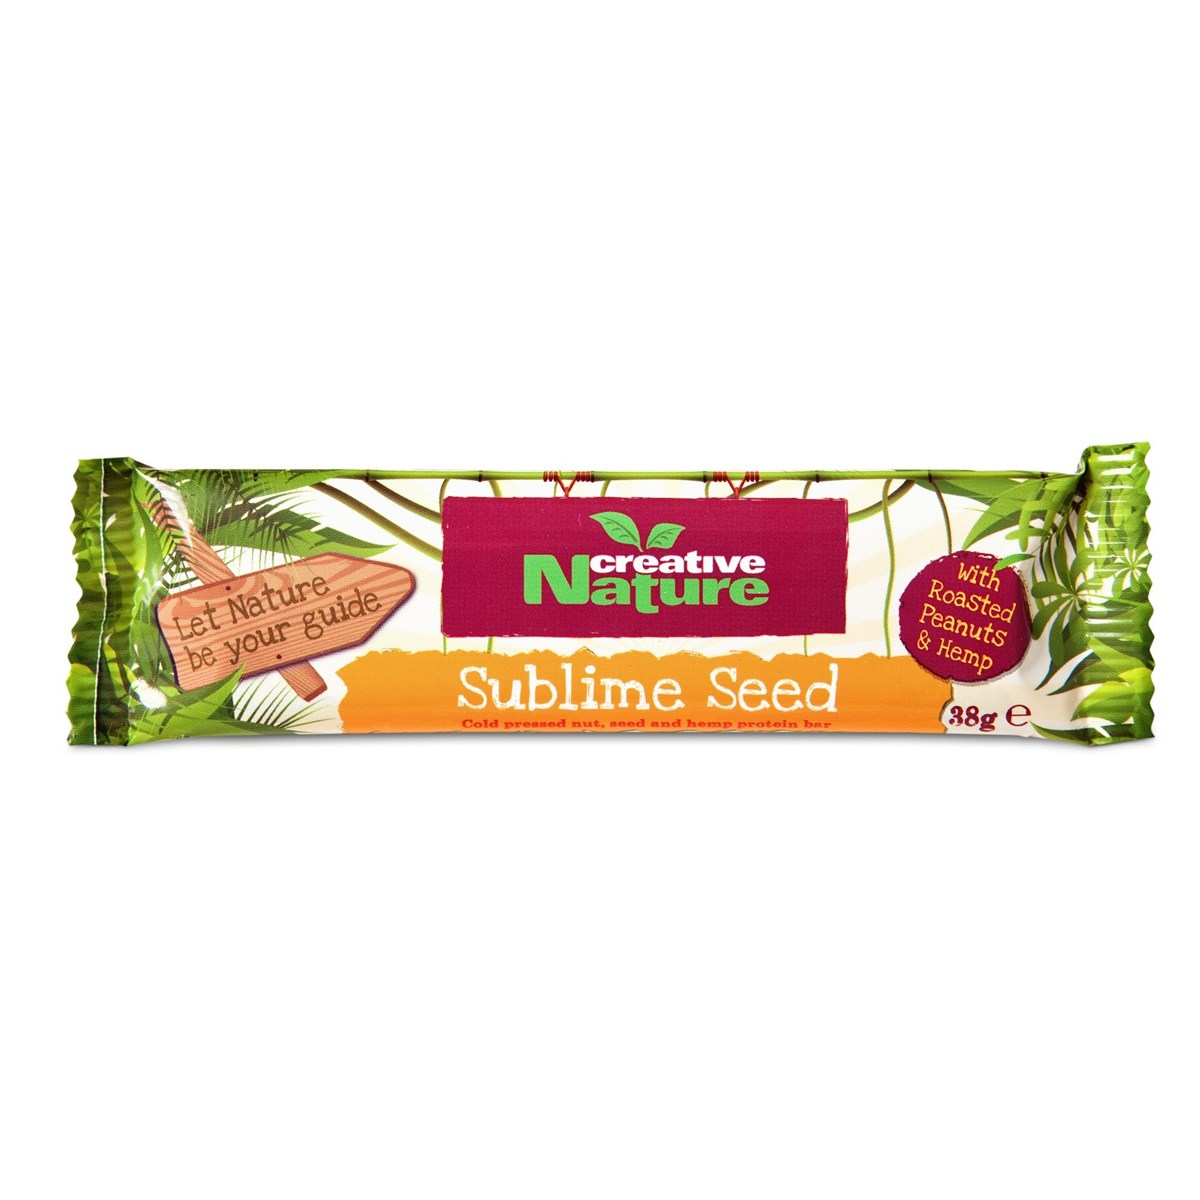 Creative Nature Sublime Seed Bar